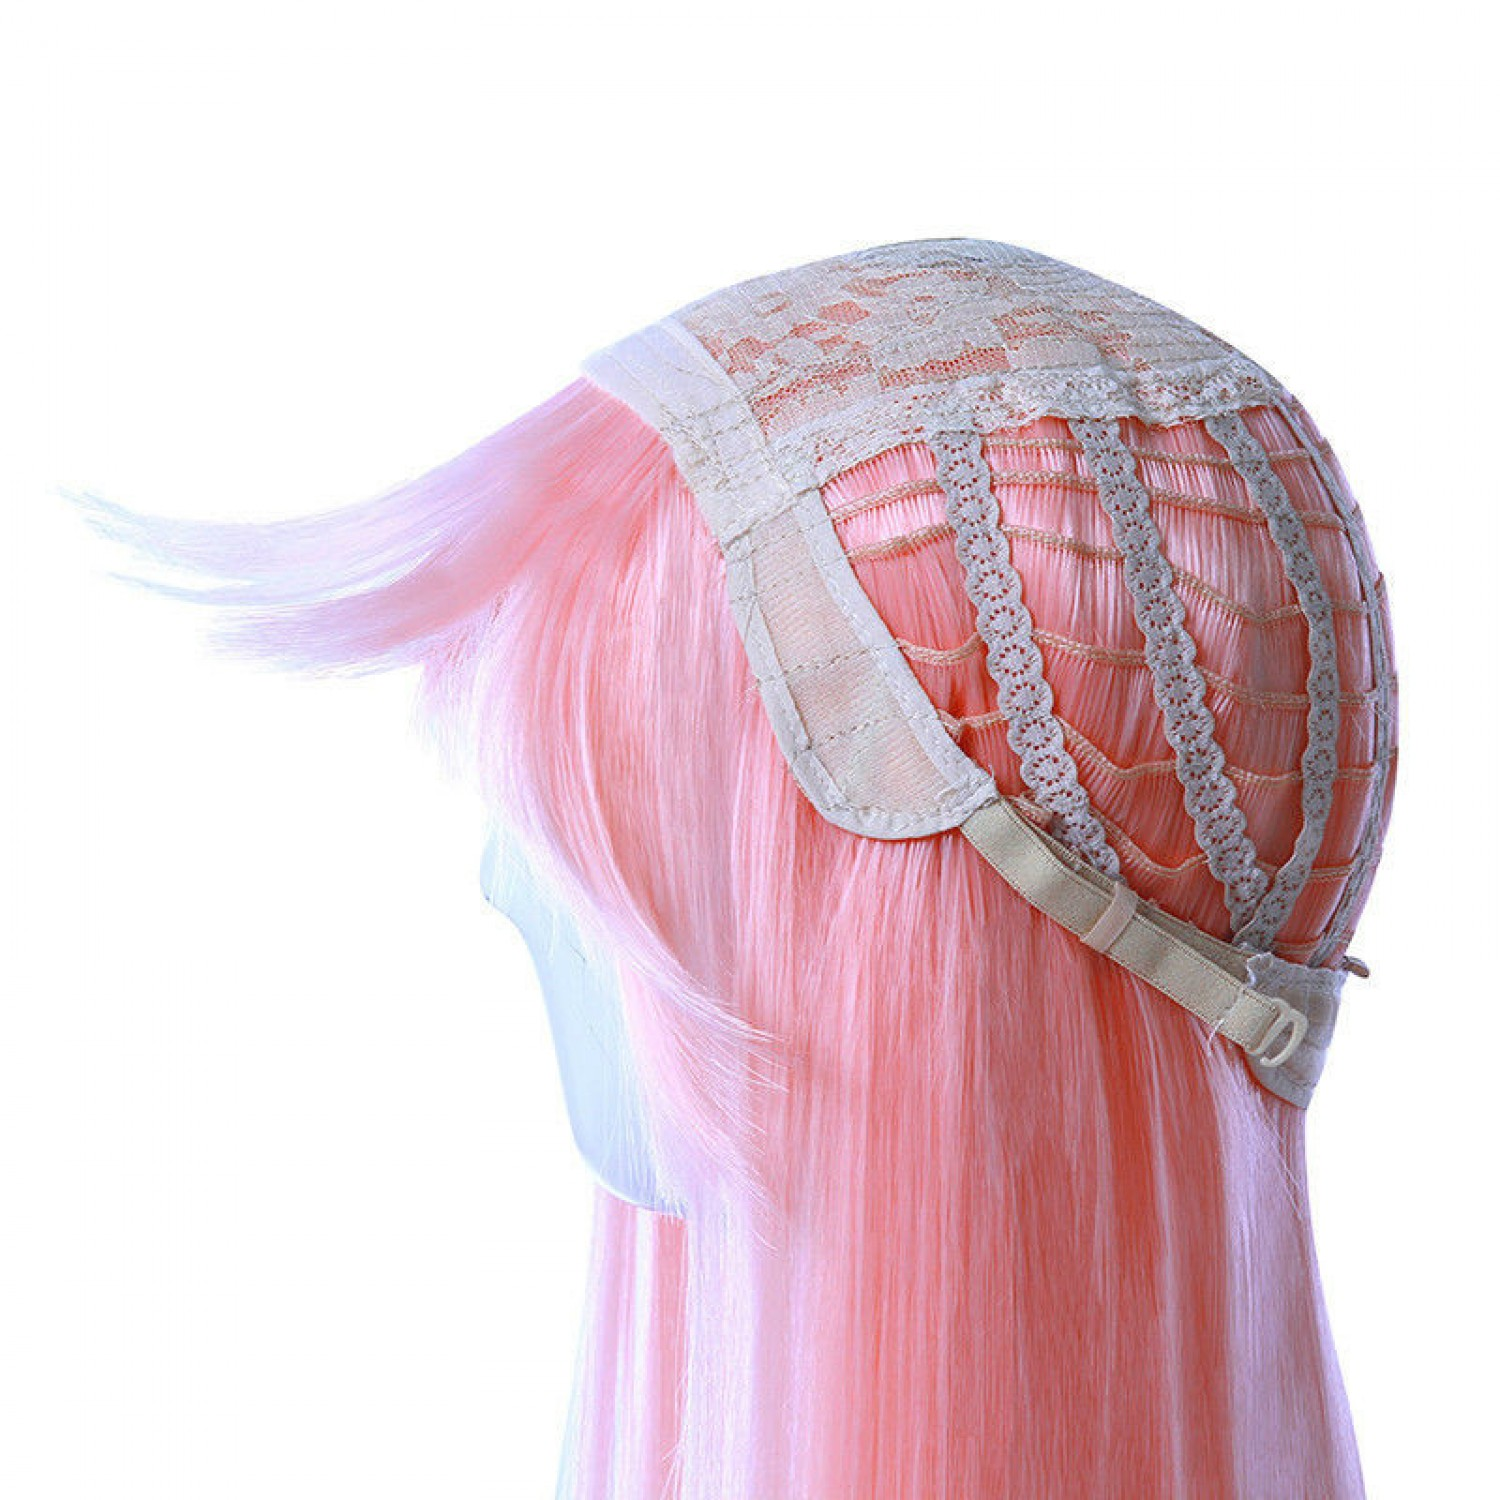 DARLING in the FRANXX Zero Rwo cosplay Wig Long Pink Long Straight Party Wig